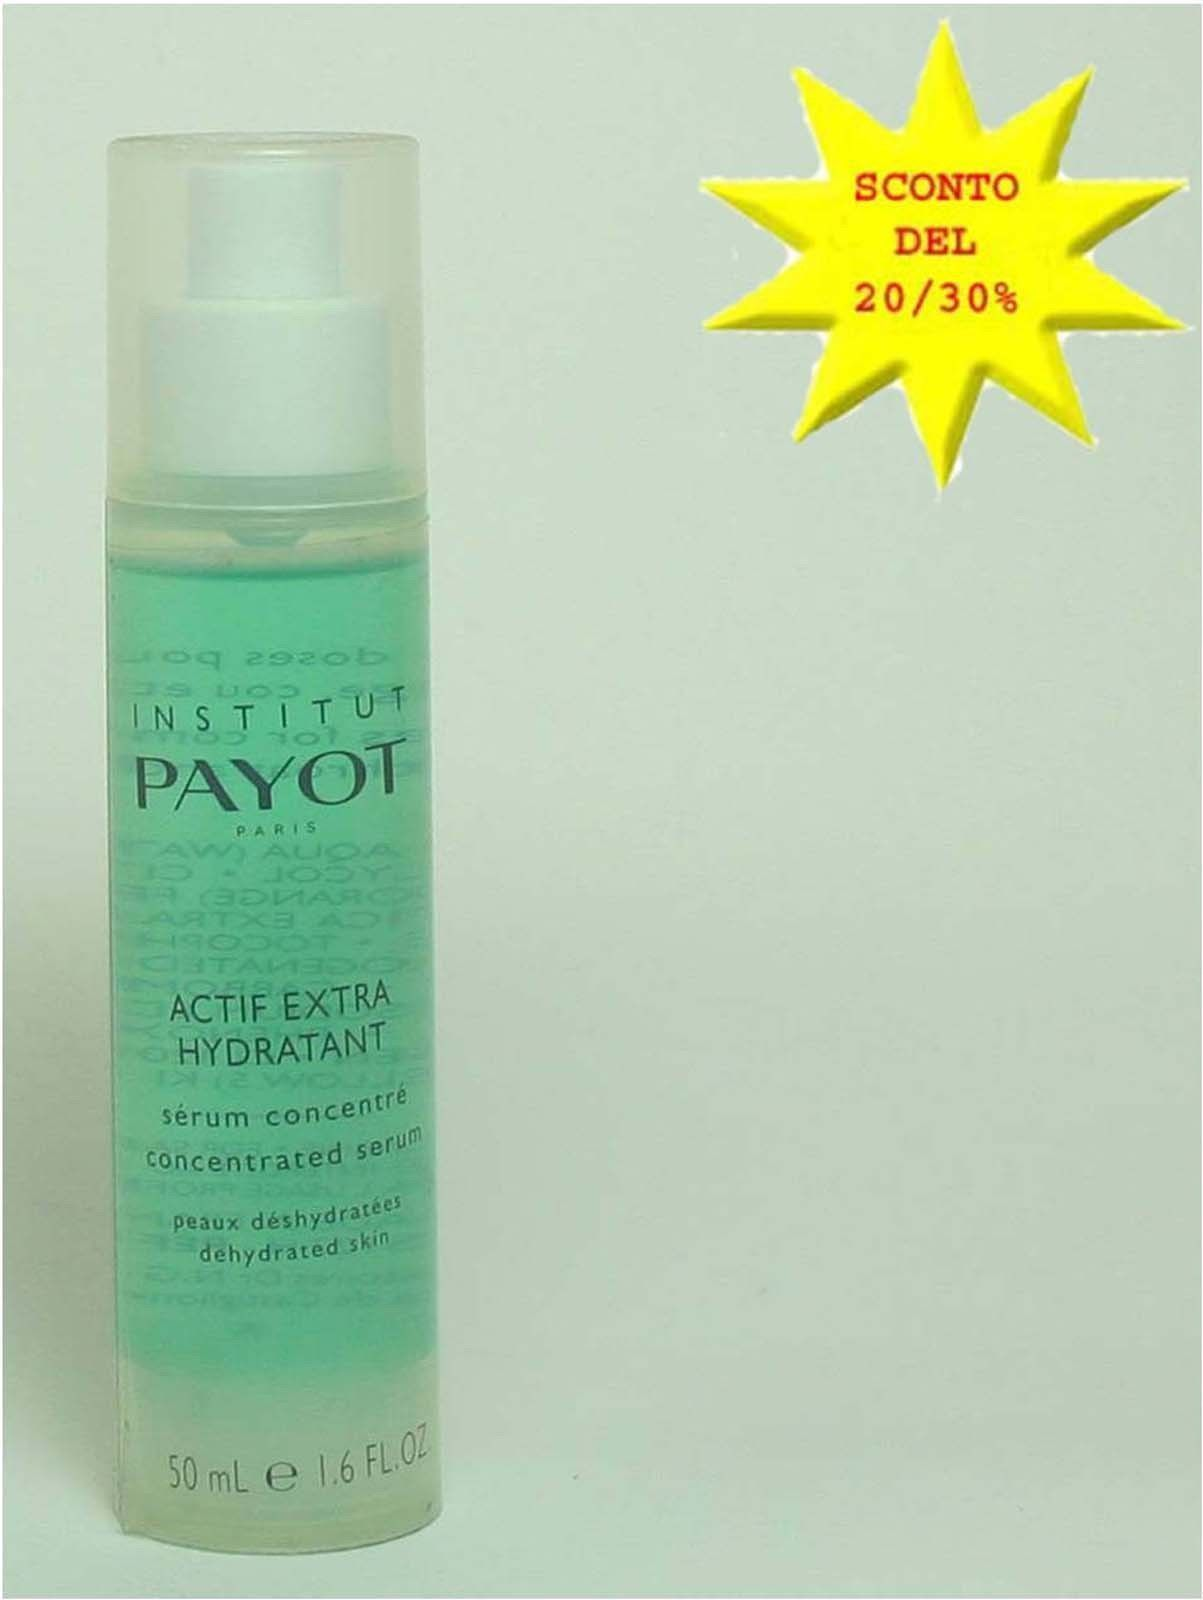 PAYOT ACTIF EXTRA HYDRATANT 50 ml